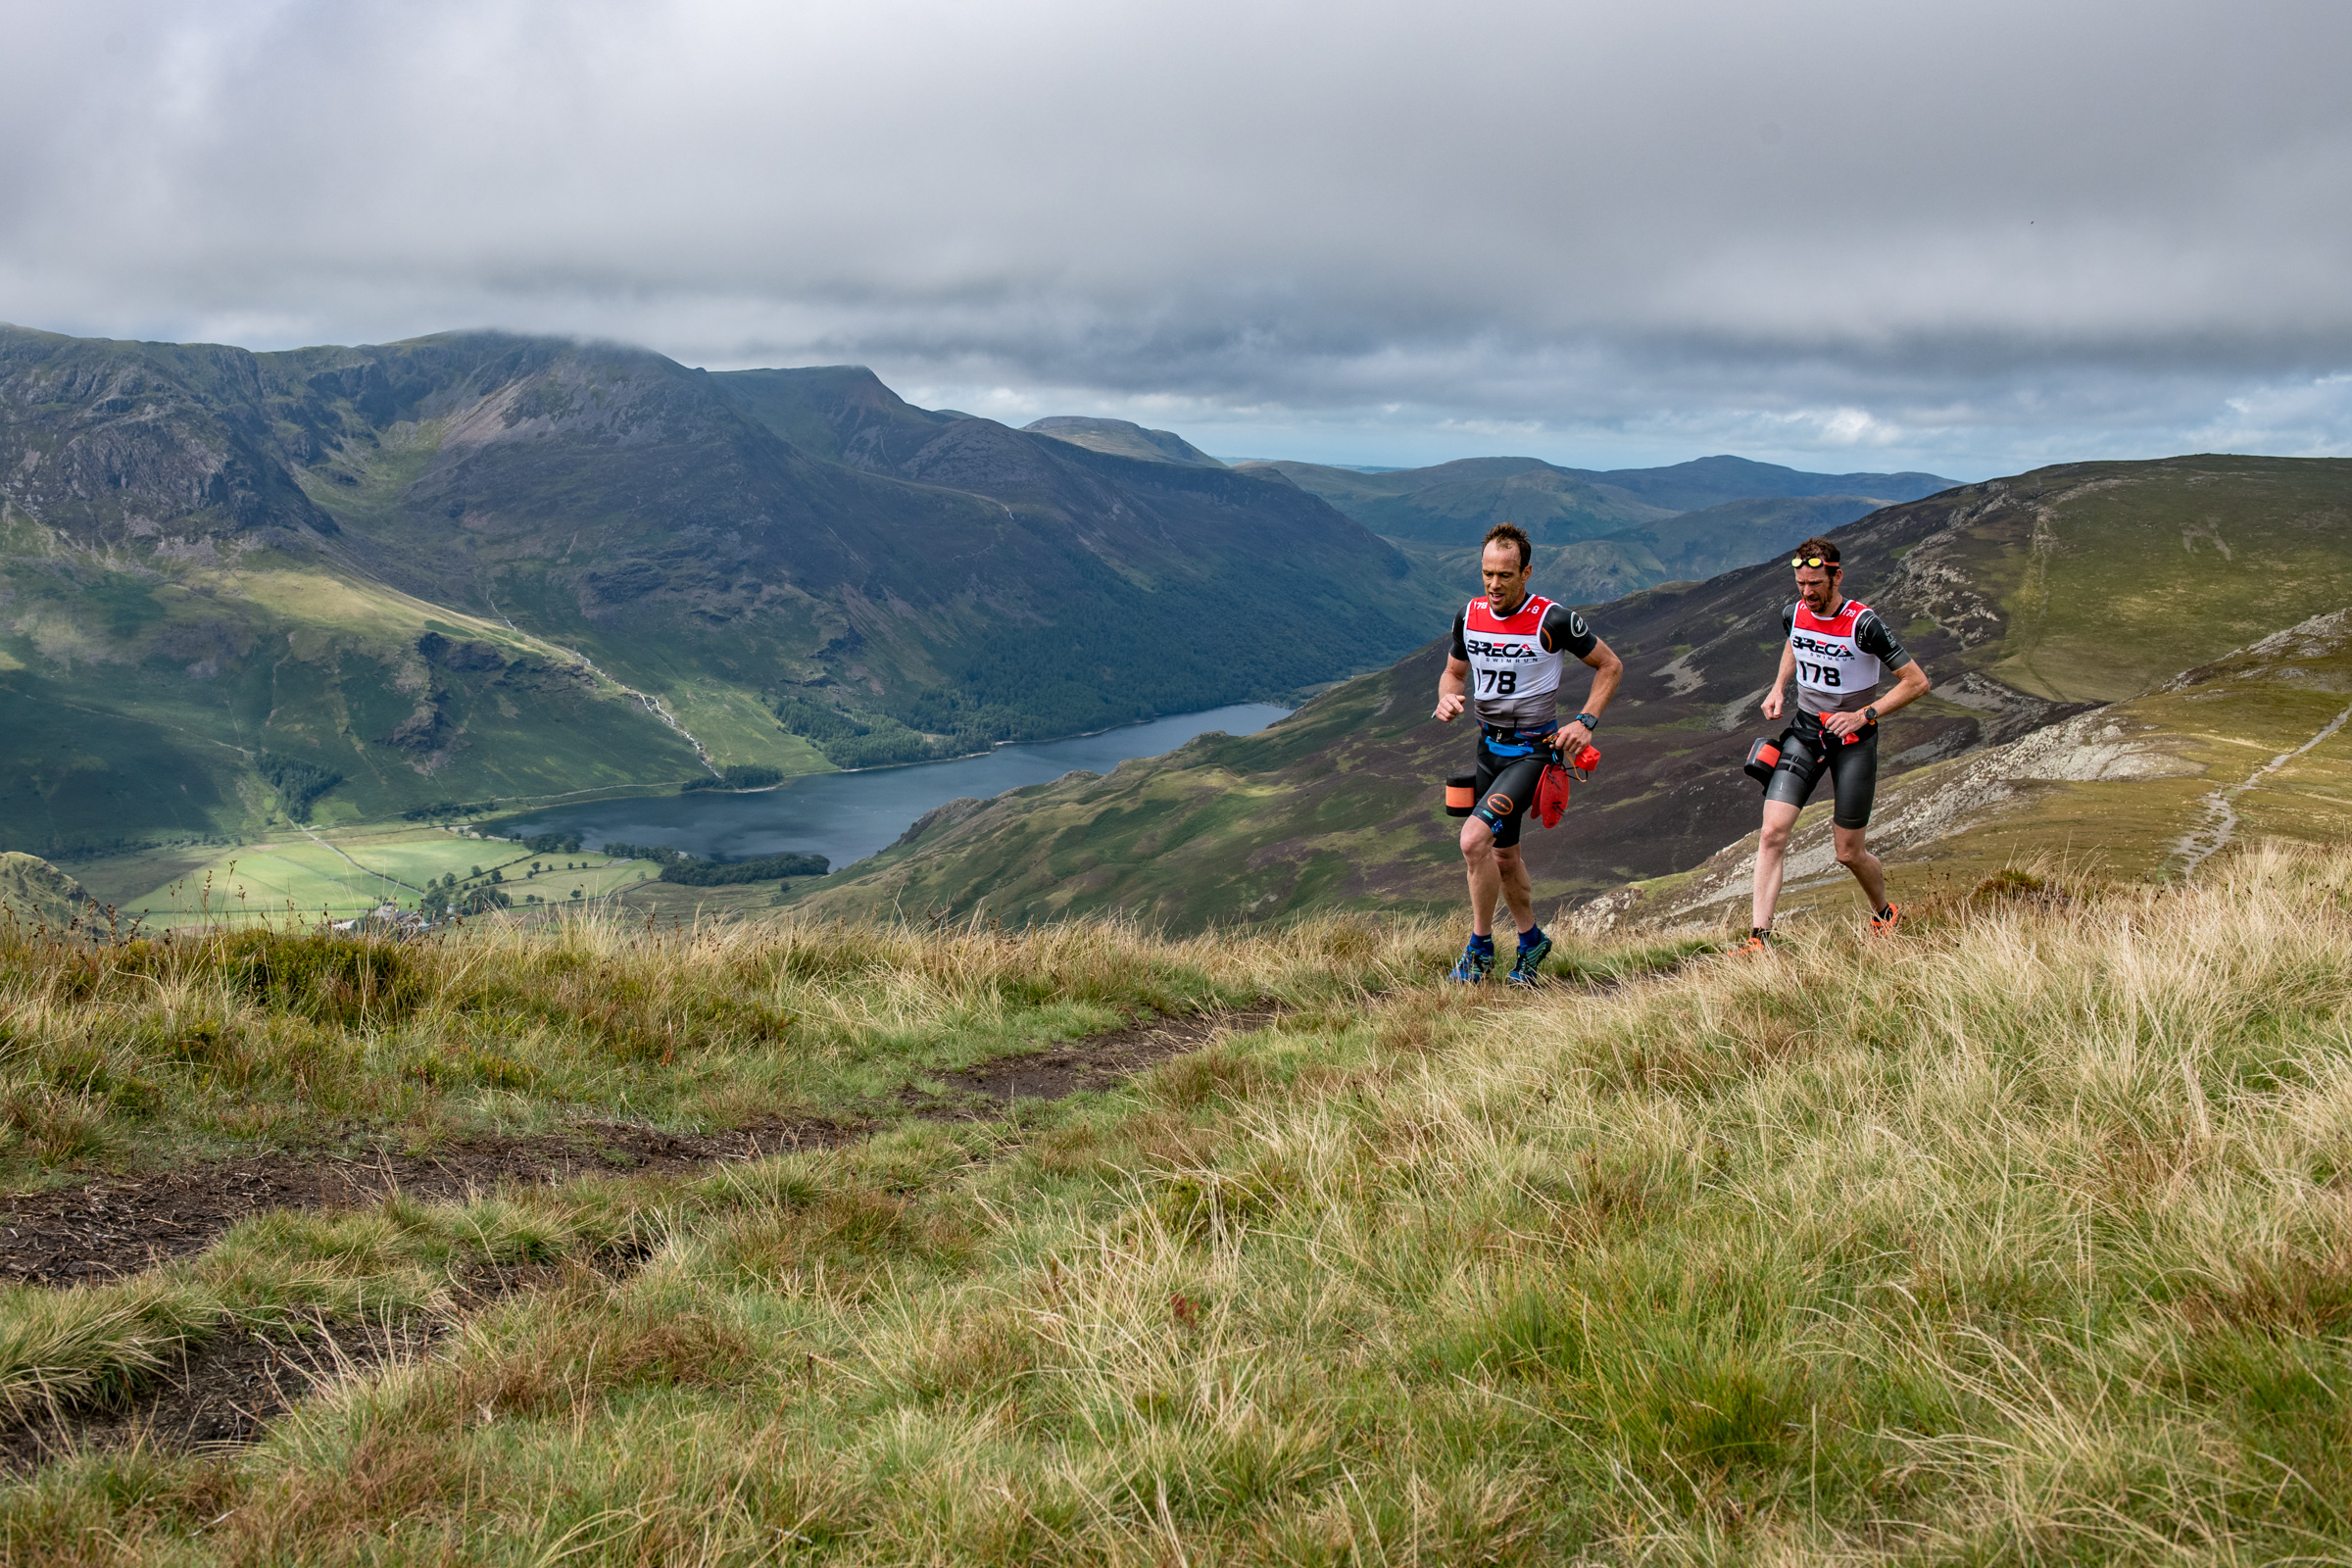 Sign up for Breca Buttermere 2019 - 11th August 2019, 43km swimrun. Sign up now to enjoy our early-bird rates!Early-bird 1: £330 per team (SOLD OUT)Early-bird 2: £350 per team (Ends 31st March 2019)Late registration: £370 per teamEntry fees are for a team of two+ £80 for two bunks, + £100 for a twin room at race HQ, both bed and breakfast, check in Saturday 10th August, check out Sunday 11th August + 3.75% Trumin processing fee for all tiers; includes VAT